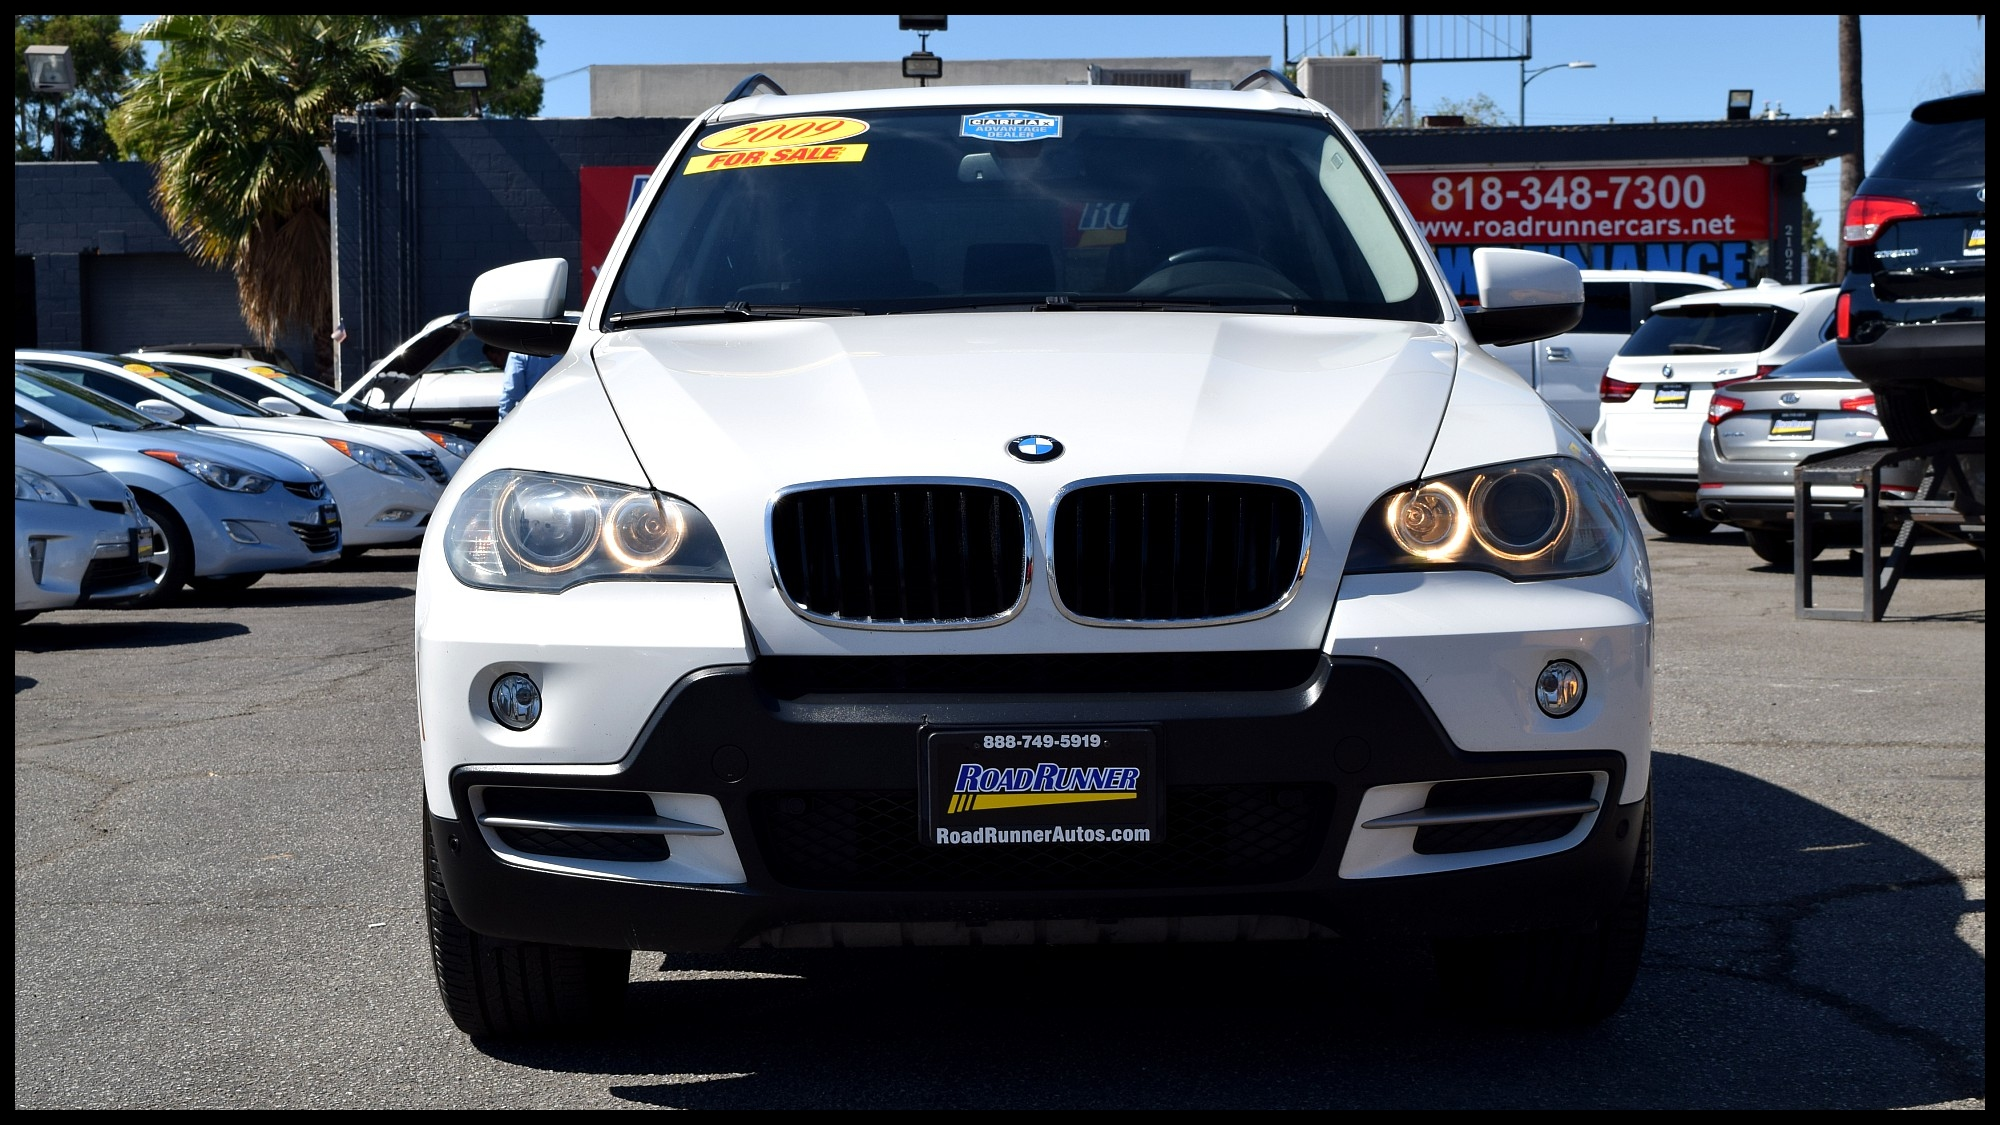 2009 BMW X5 XDRIVE30I 30I Used Cars Los Angeles Roadrunner Auto Group Inc Canoga Park CA Used Car Dealer San Fernando Valley Van Nuys